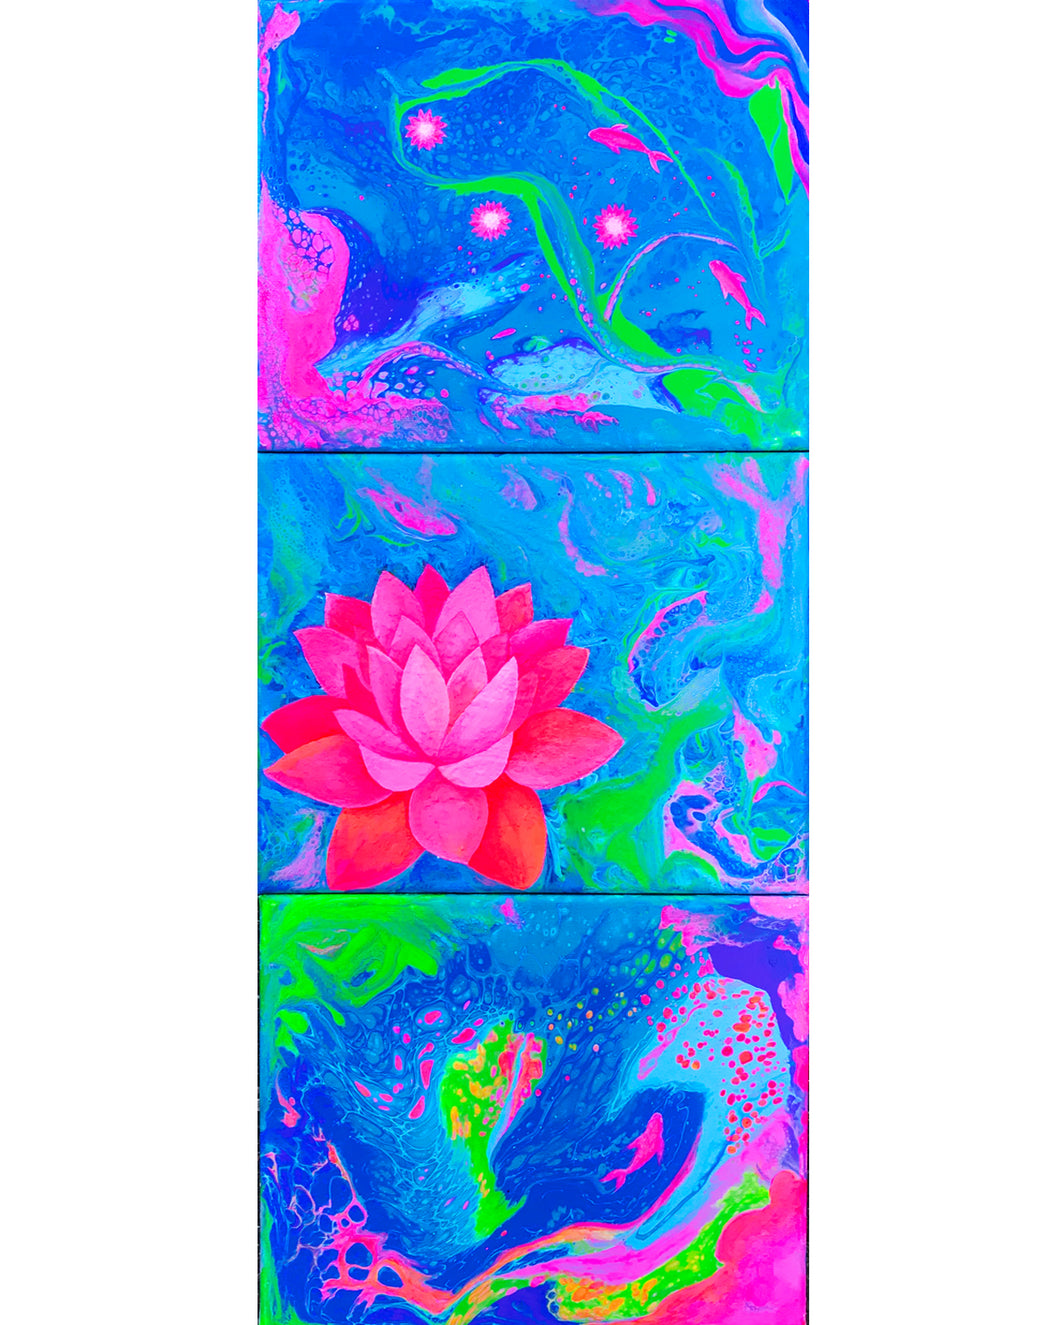 Water Lily Painting - FREE Download